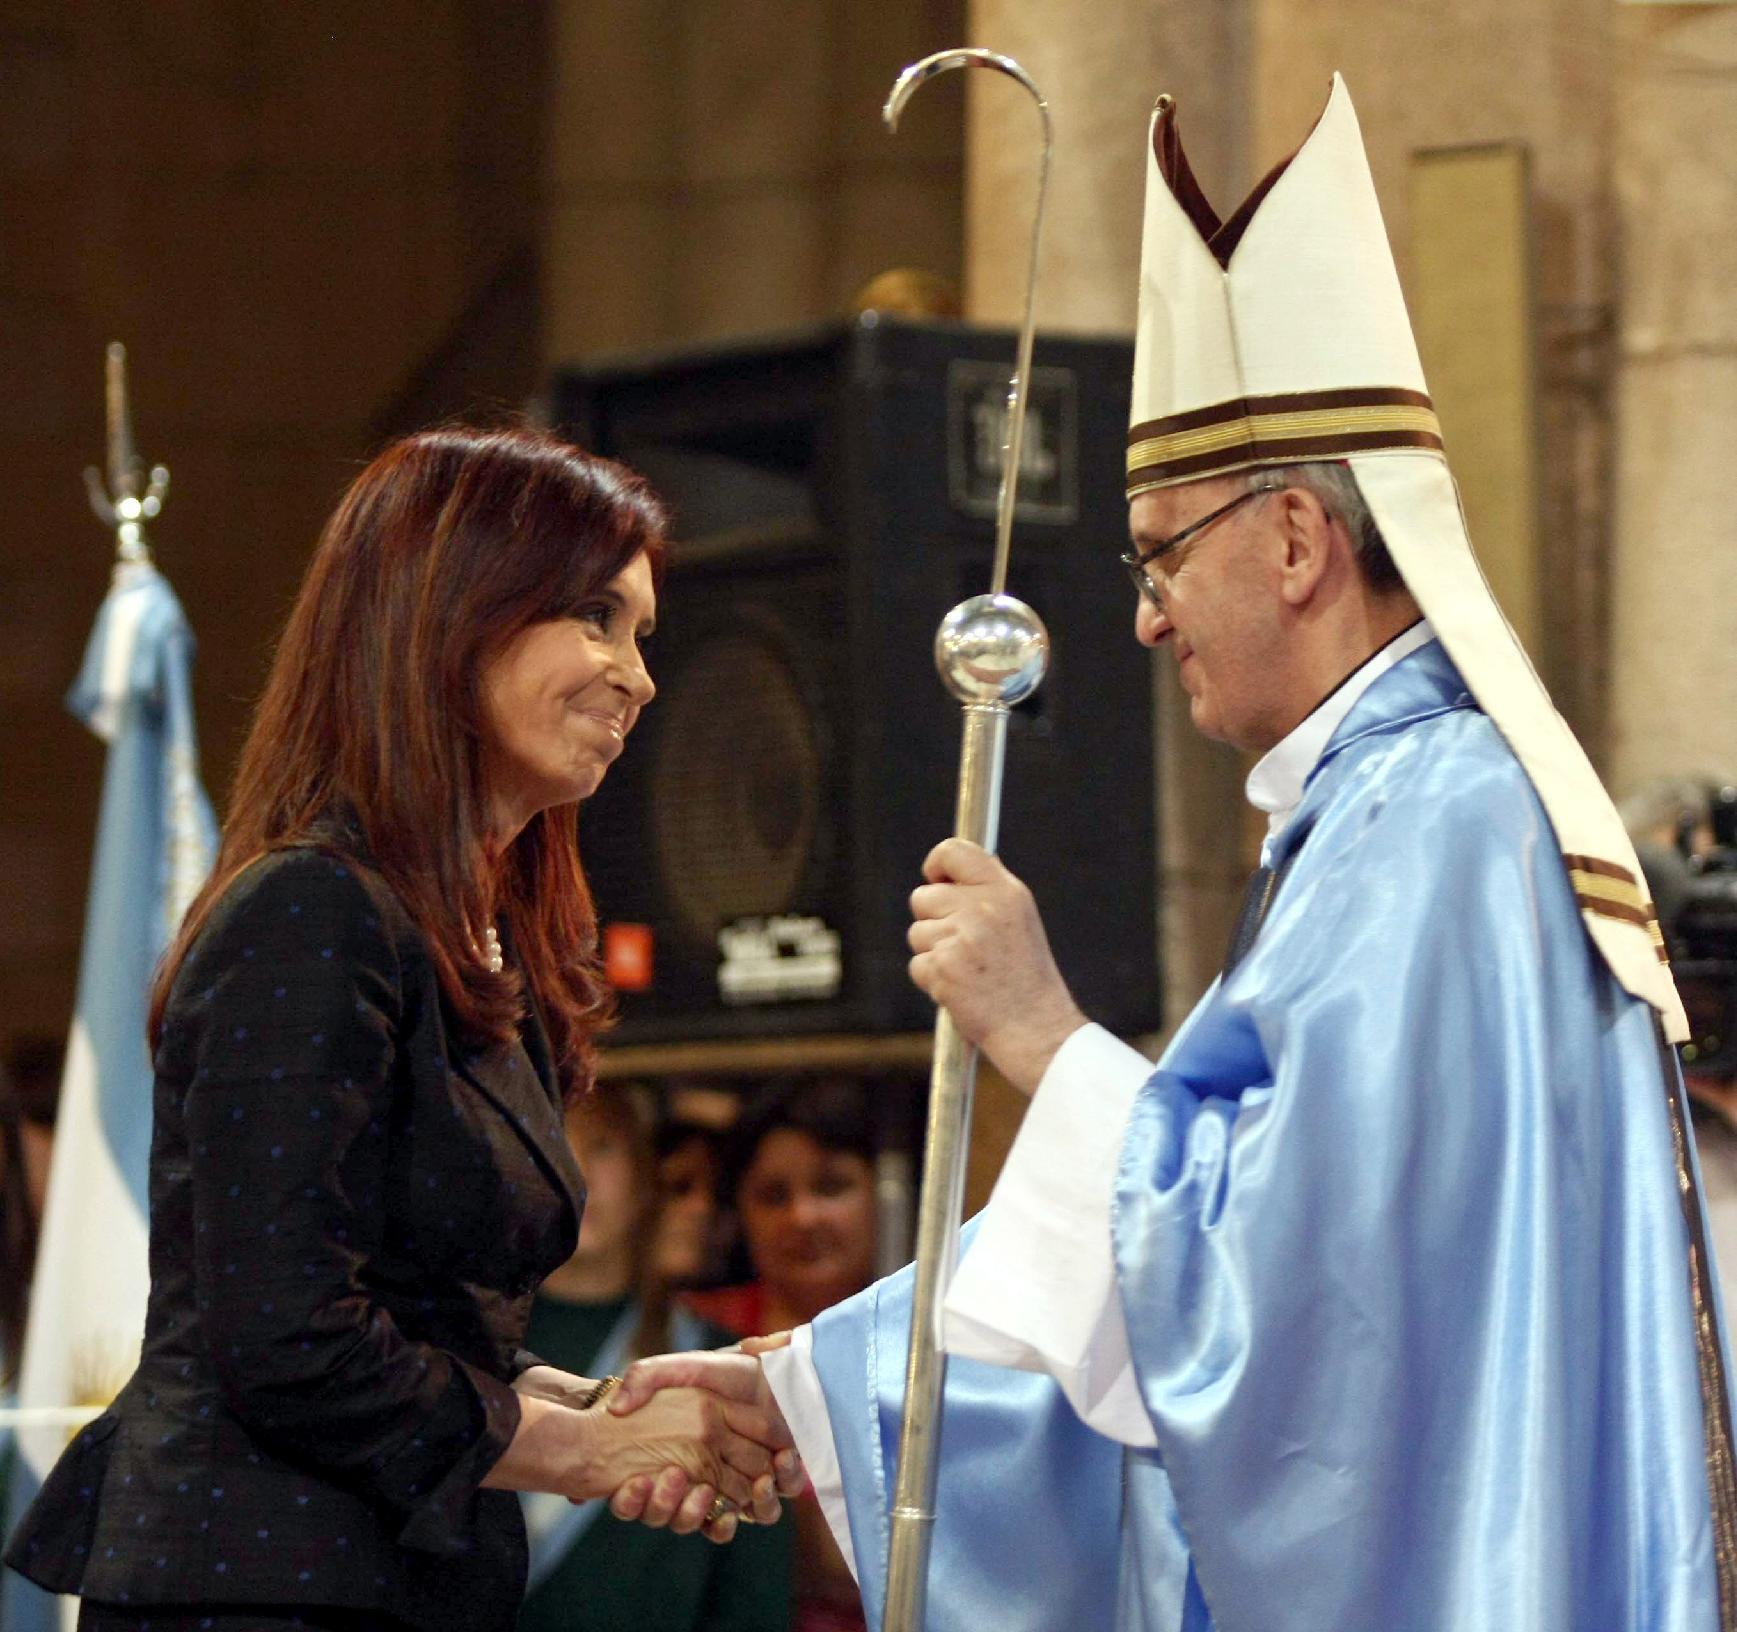 FILE - In this Dec. 12, 2008 file photo, Argentina's President Cristina Fernandez, left, shakes hands with Buenos Aires' archbishop Jorge Mario Bergoglio in Lujan, Argentina. Bergoglio, who chose the name of Francis, was chosen as the 266th pontiff of the Roman Catholic Church on March 13, 2013. Pope Francis has honed his leadership skills in one of the most difficult classrooms on the planet: Argentina, where politics has long been a blood sport practiced only by the brave. (AP Photo/DyN, File)